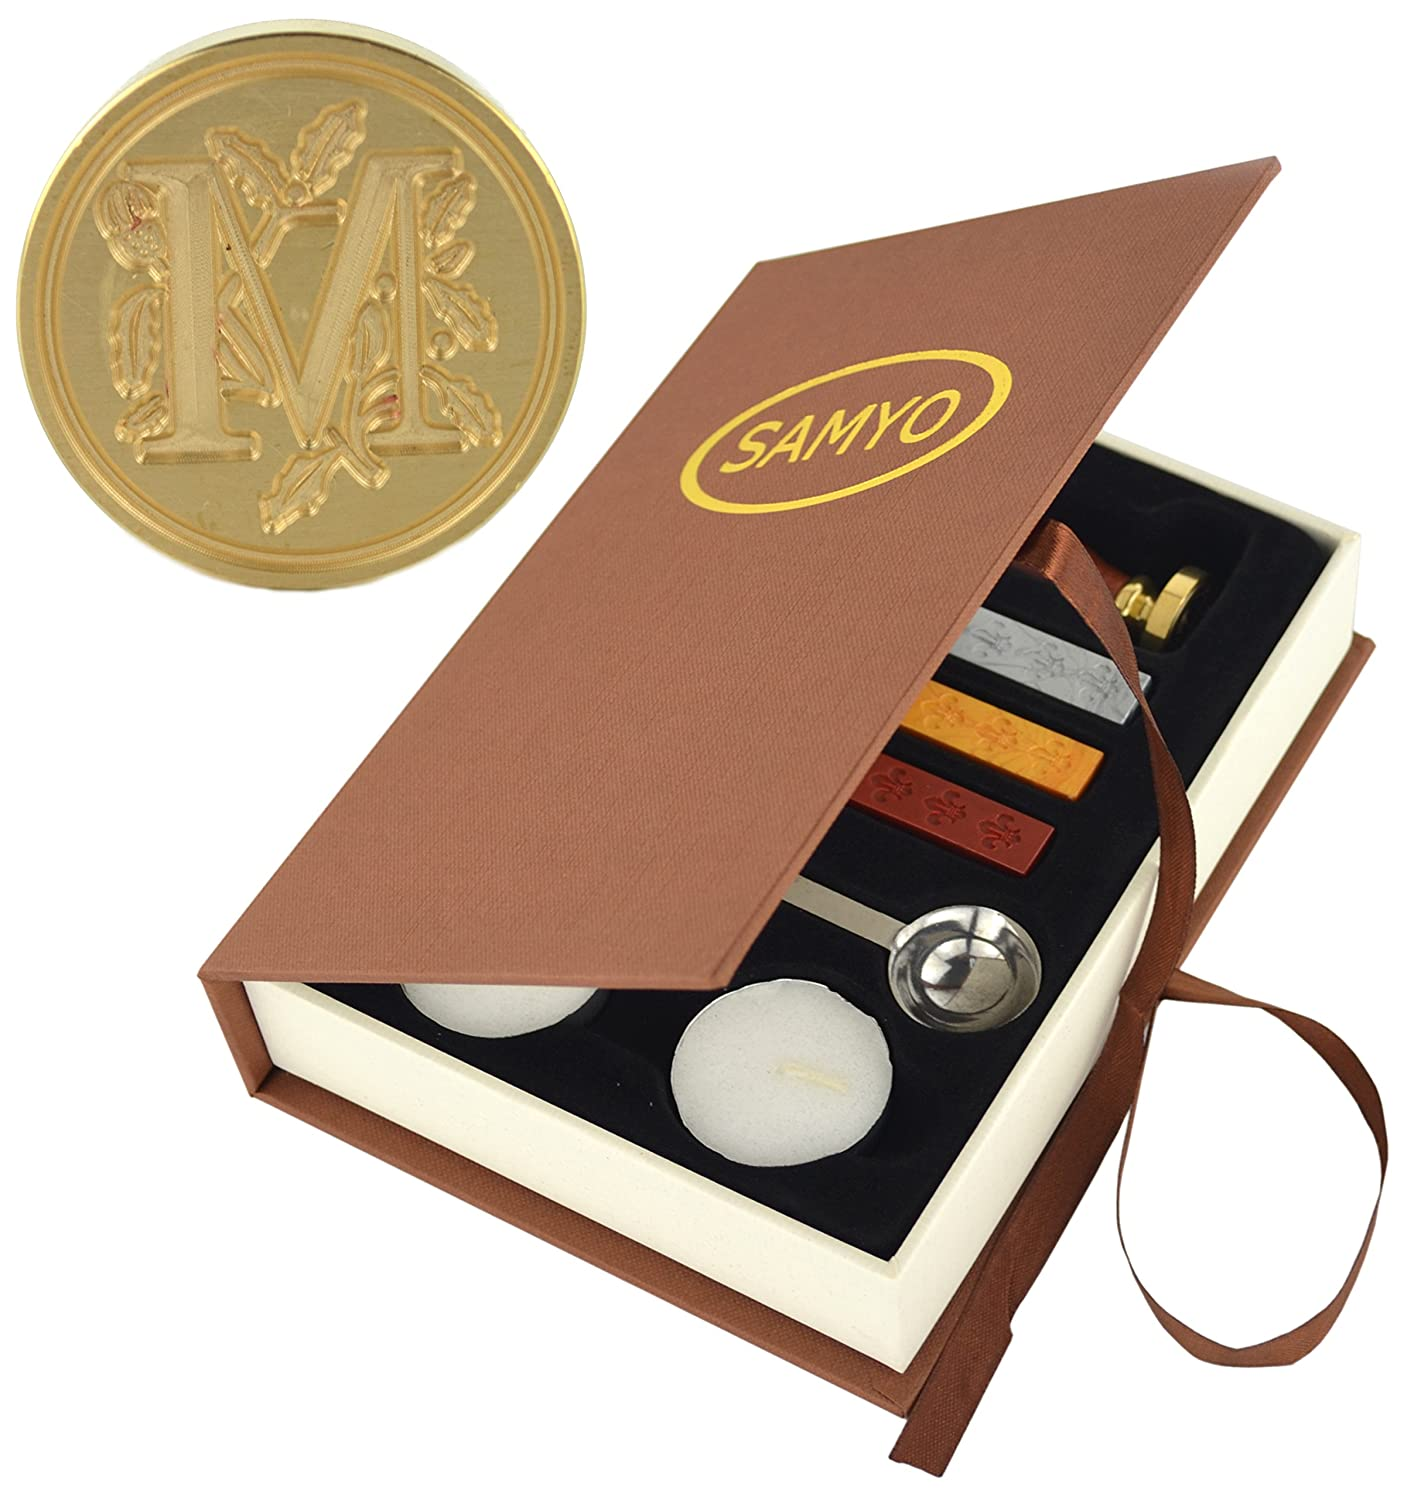 Samyo Stamp Seal Sealing Wax Vintage Classic Old-Fashioned Antique Alphabet Initial Letter Set Brass Color Creative Romantic Stamp Maker (C)